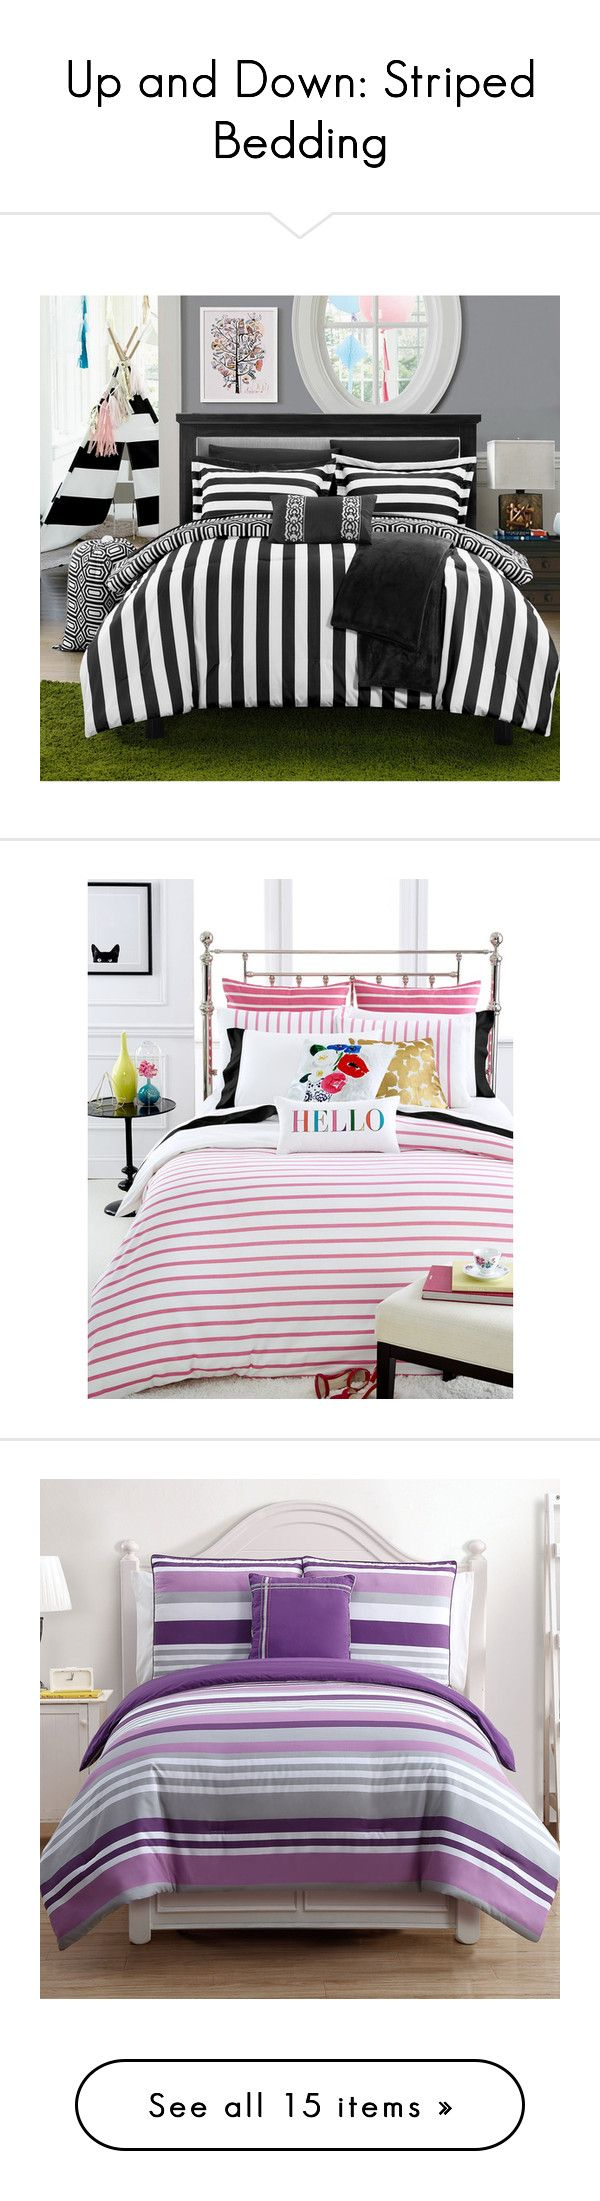 """""""Up and Down: Striped Bedding"""" by polyvore-editorial ❤ liked on Polyvore featuring stripedbedding, home, bed & bath, bedding, striped bedding sets, 10 pc bedding sets, 10 piece bedding set, stripe bedding, stripe bedding set and comforters"""